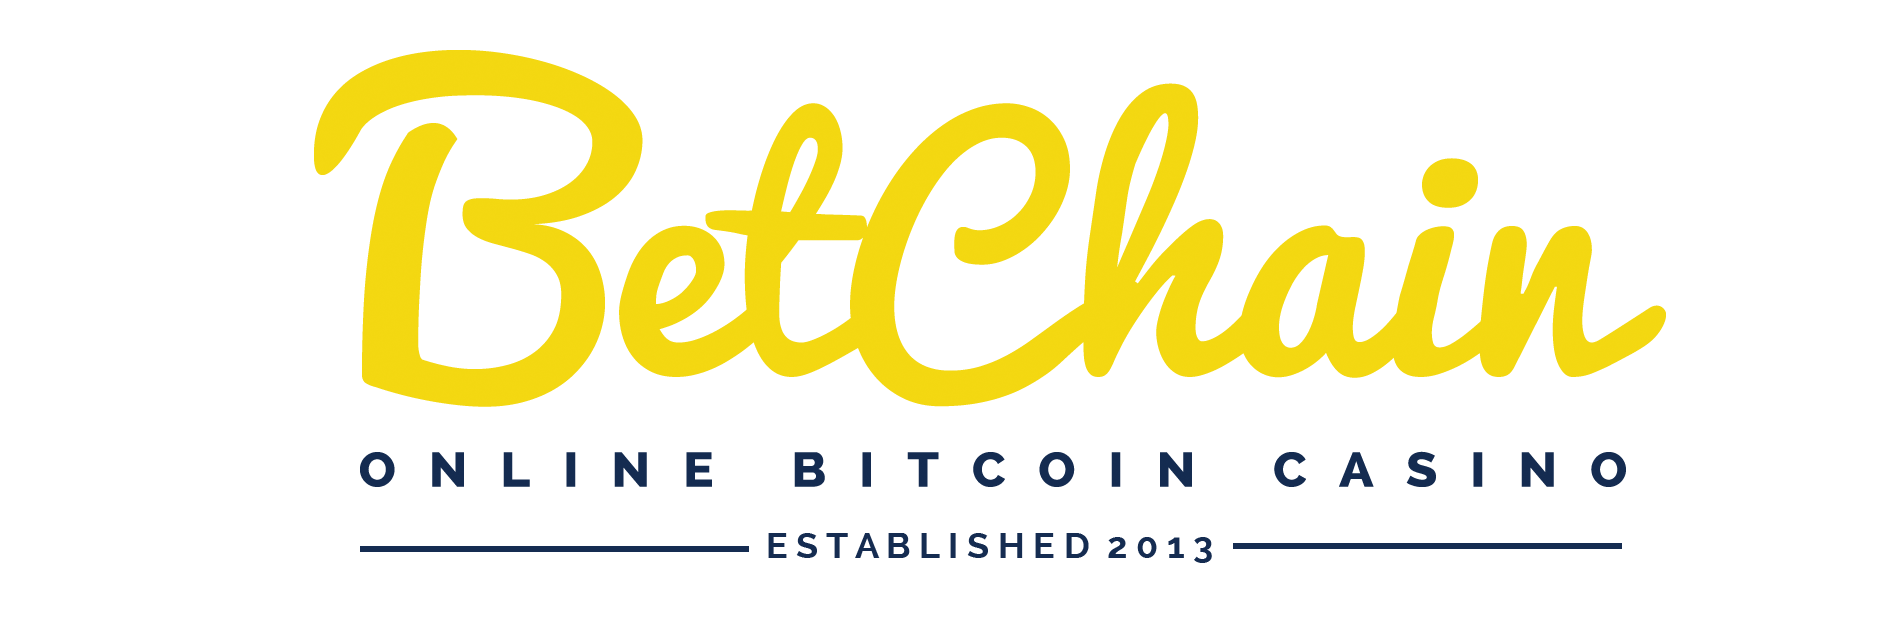 Betchain Online Casino Review